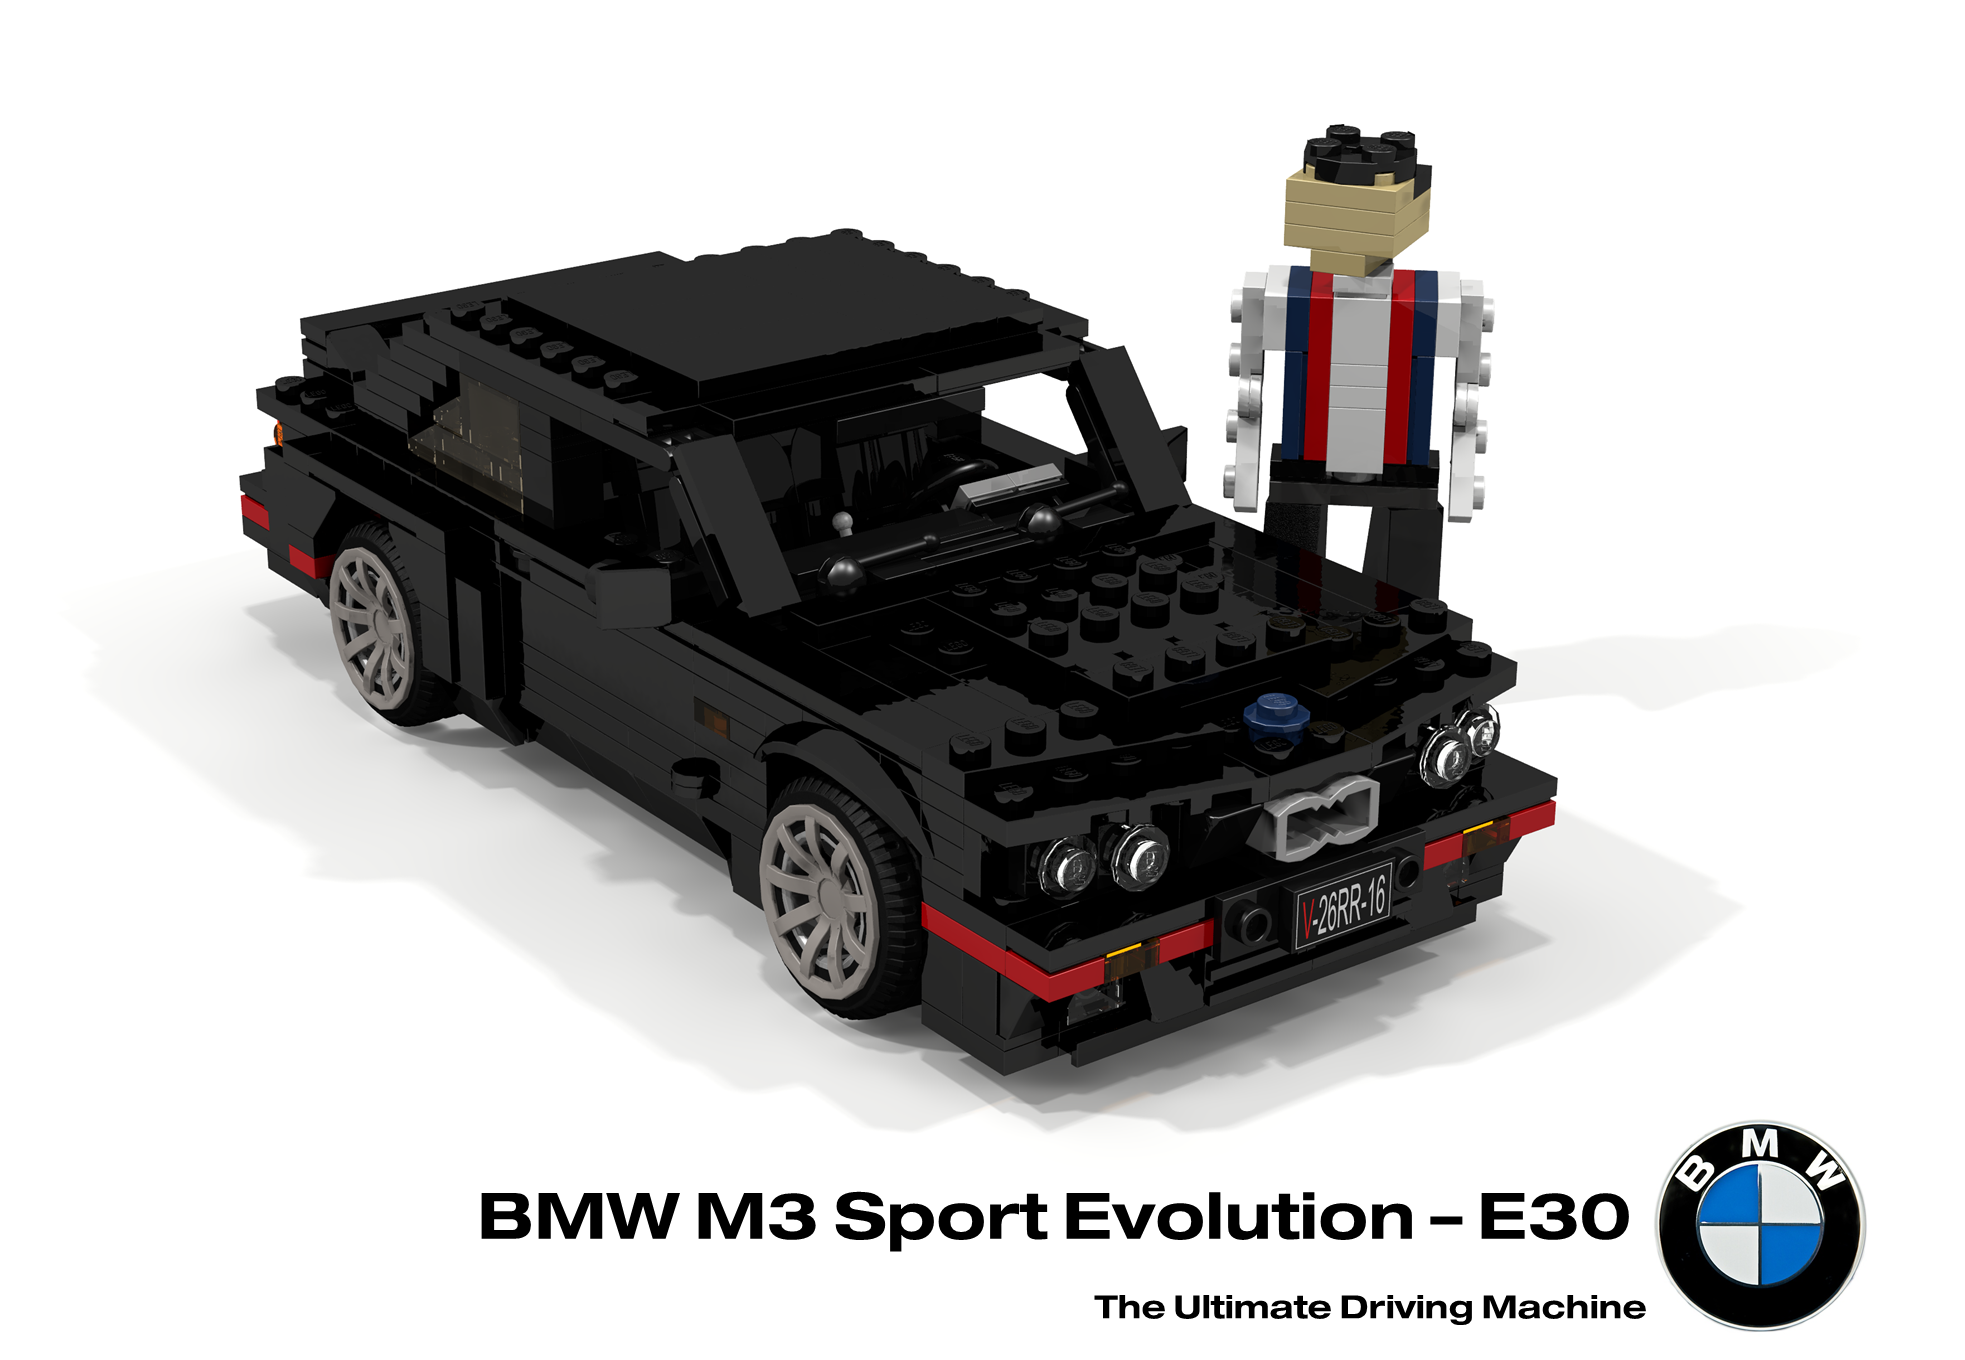 bmw_e30_m3_sport_evolution_08.png